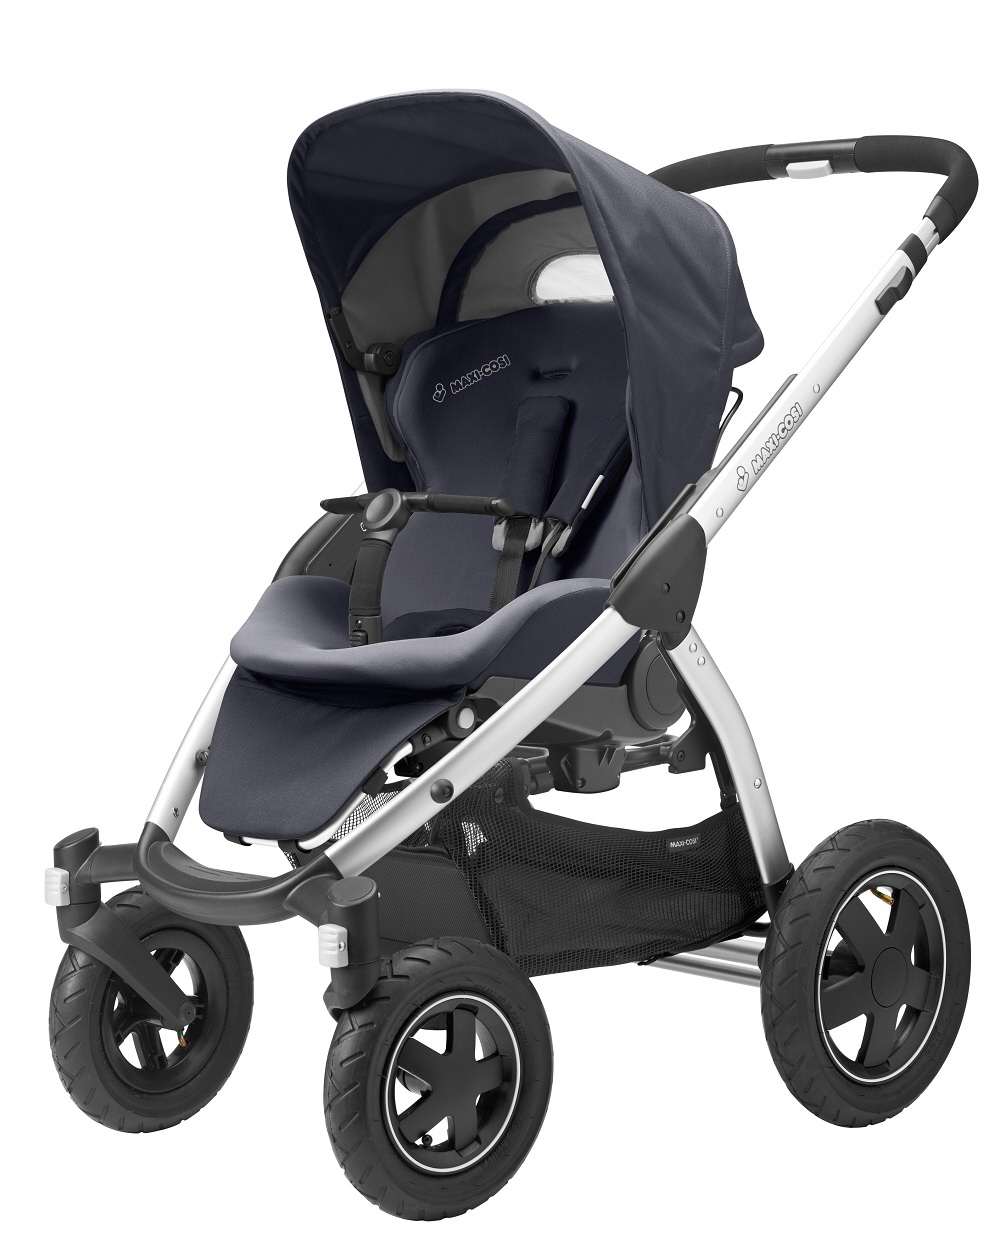 maxi cosi mura 4 stroller 2015 total black buy at. Black Bedroom Furniture Sets. Home Design Ideas